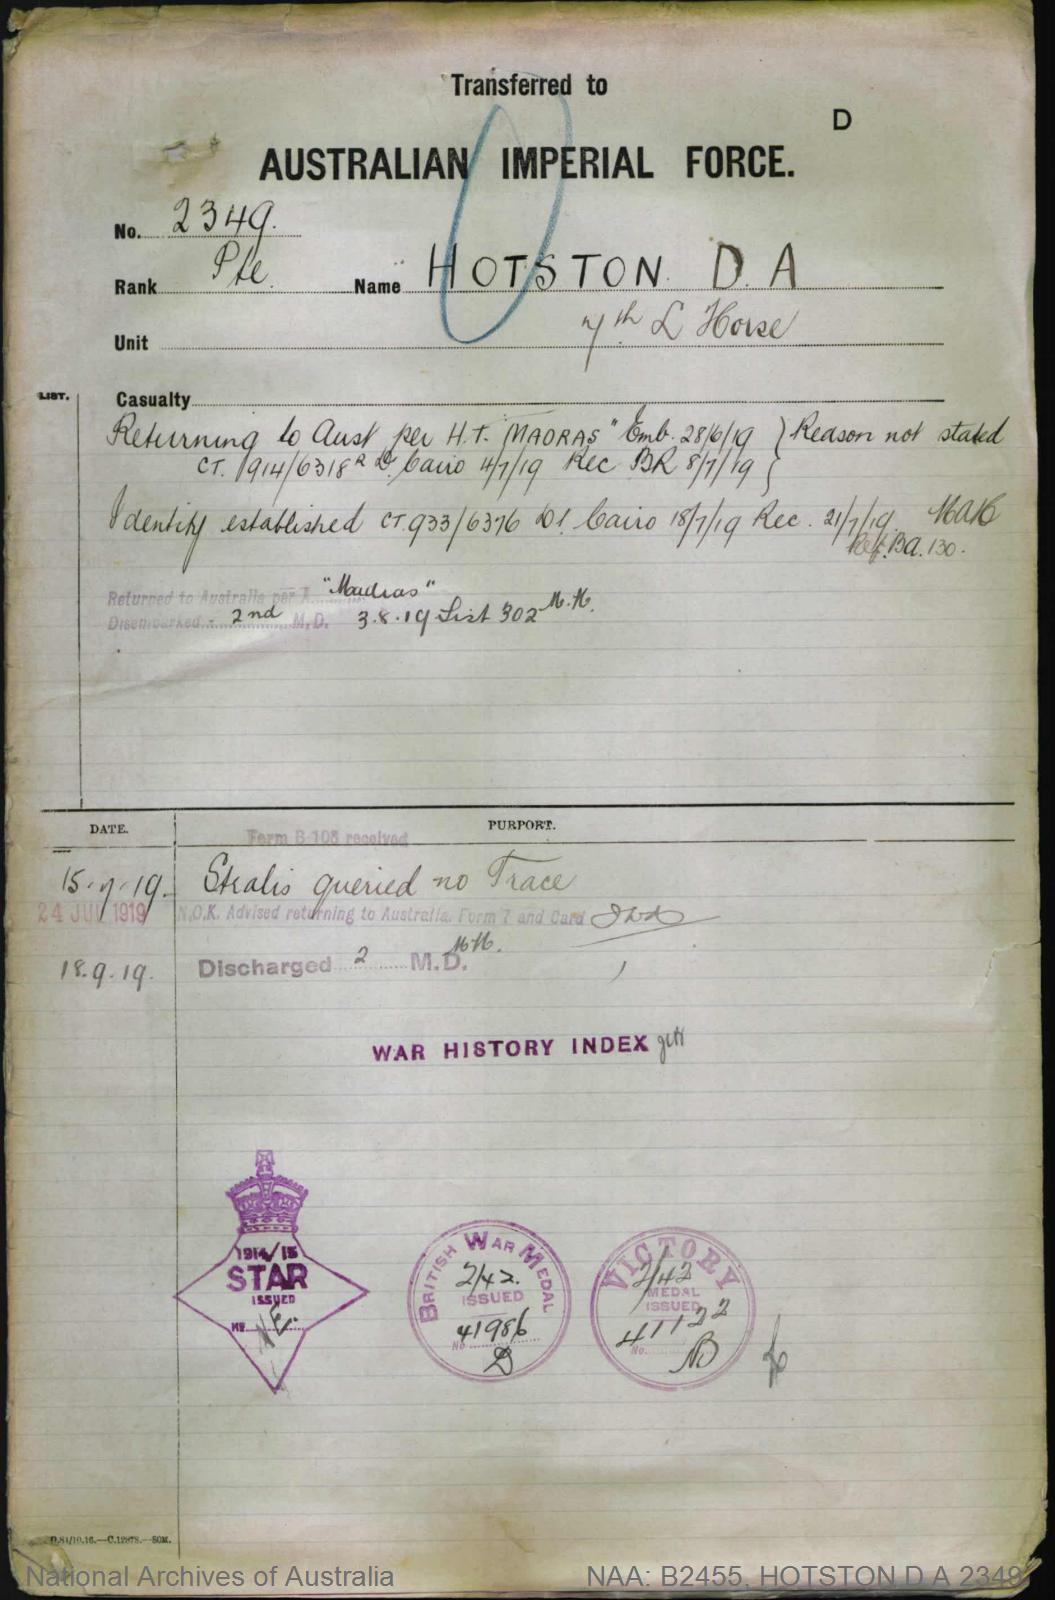 HOTSTON Dudley Attridge : Service Number - 2349 : Place of Birth - Coolah NSW : Place of Enlistment - Lithgow NSW : Next of Kin - (Mother) HOTSTON Frances